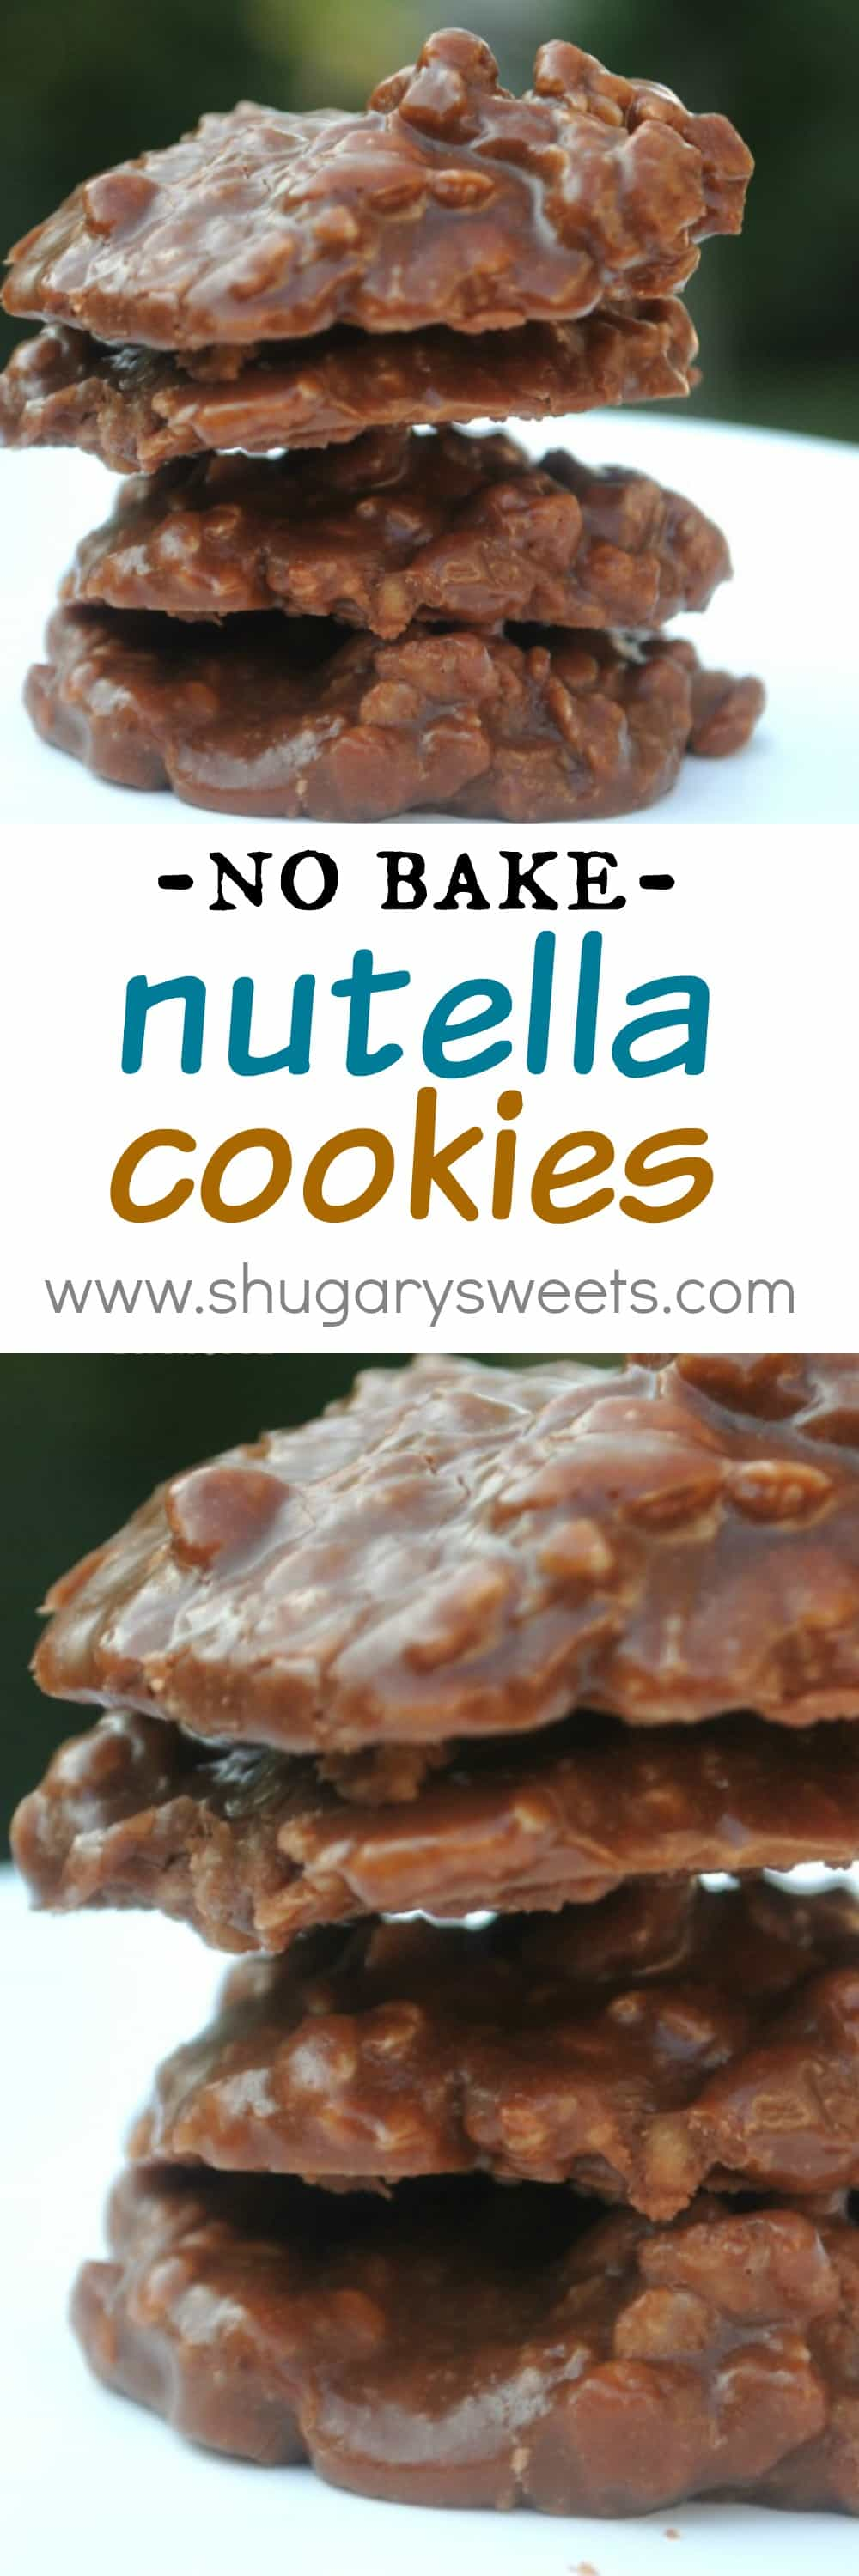 Nutella No Bake Cookies - Shugary Sweets